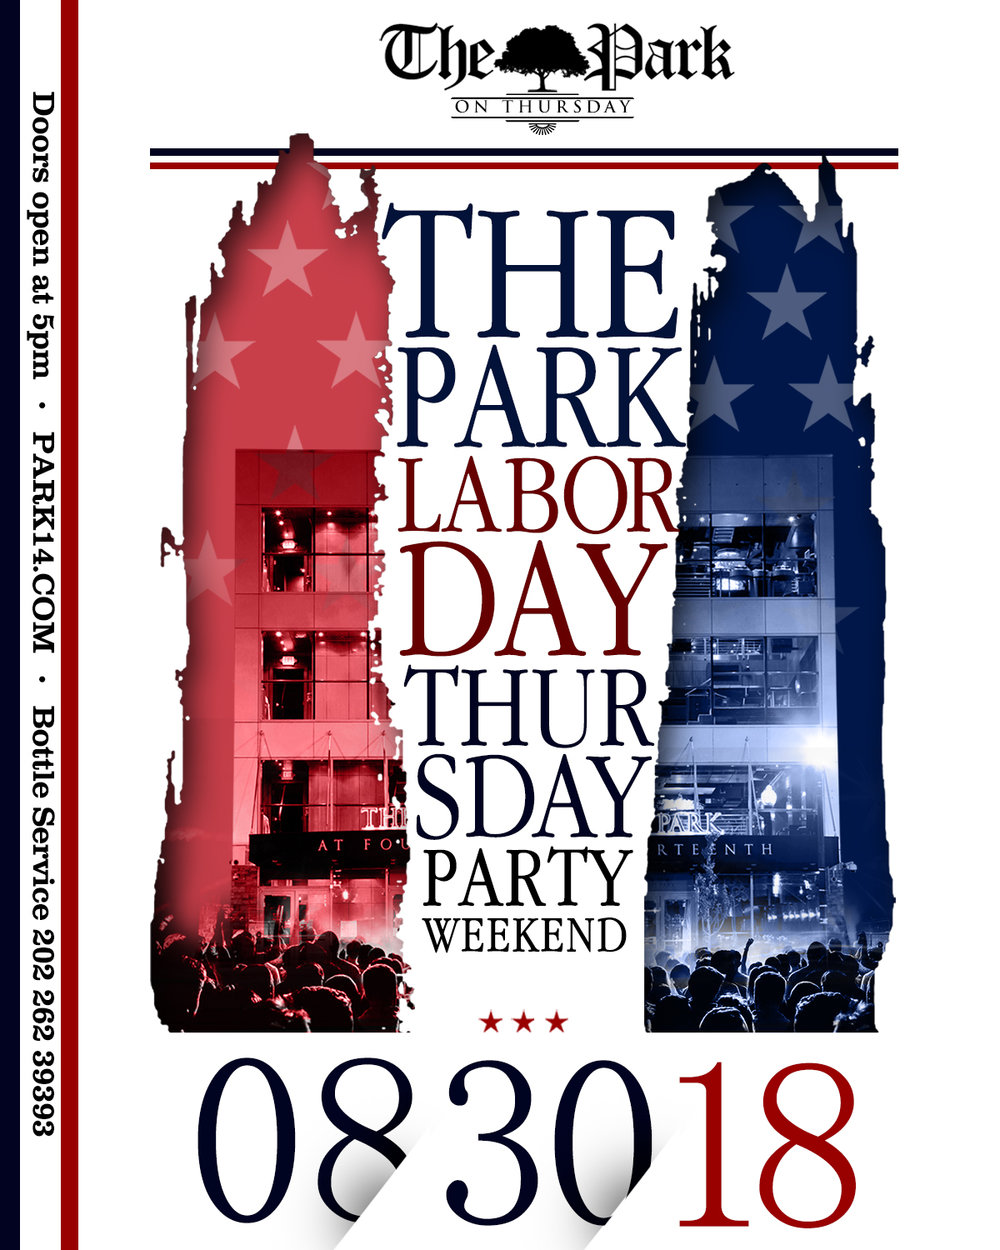 Thursday Labor Day Party 2018 v2.jpg